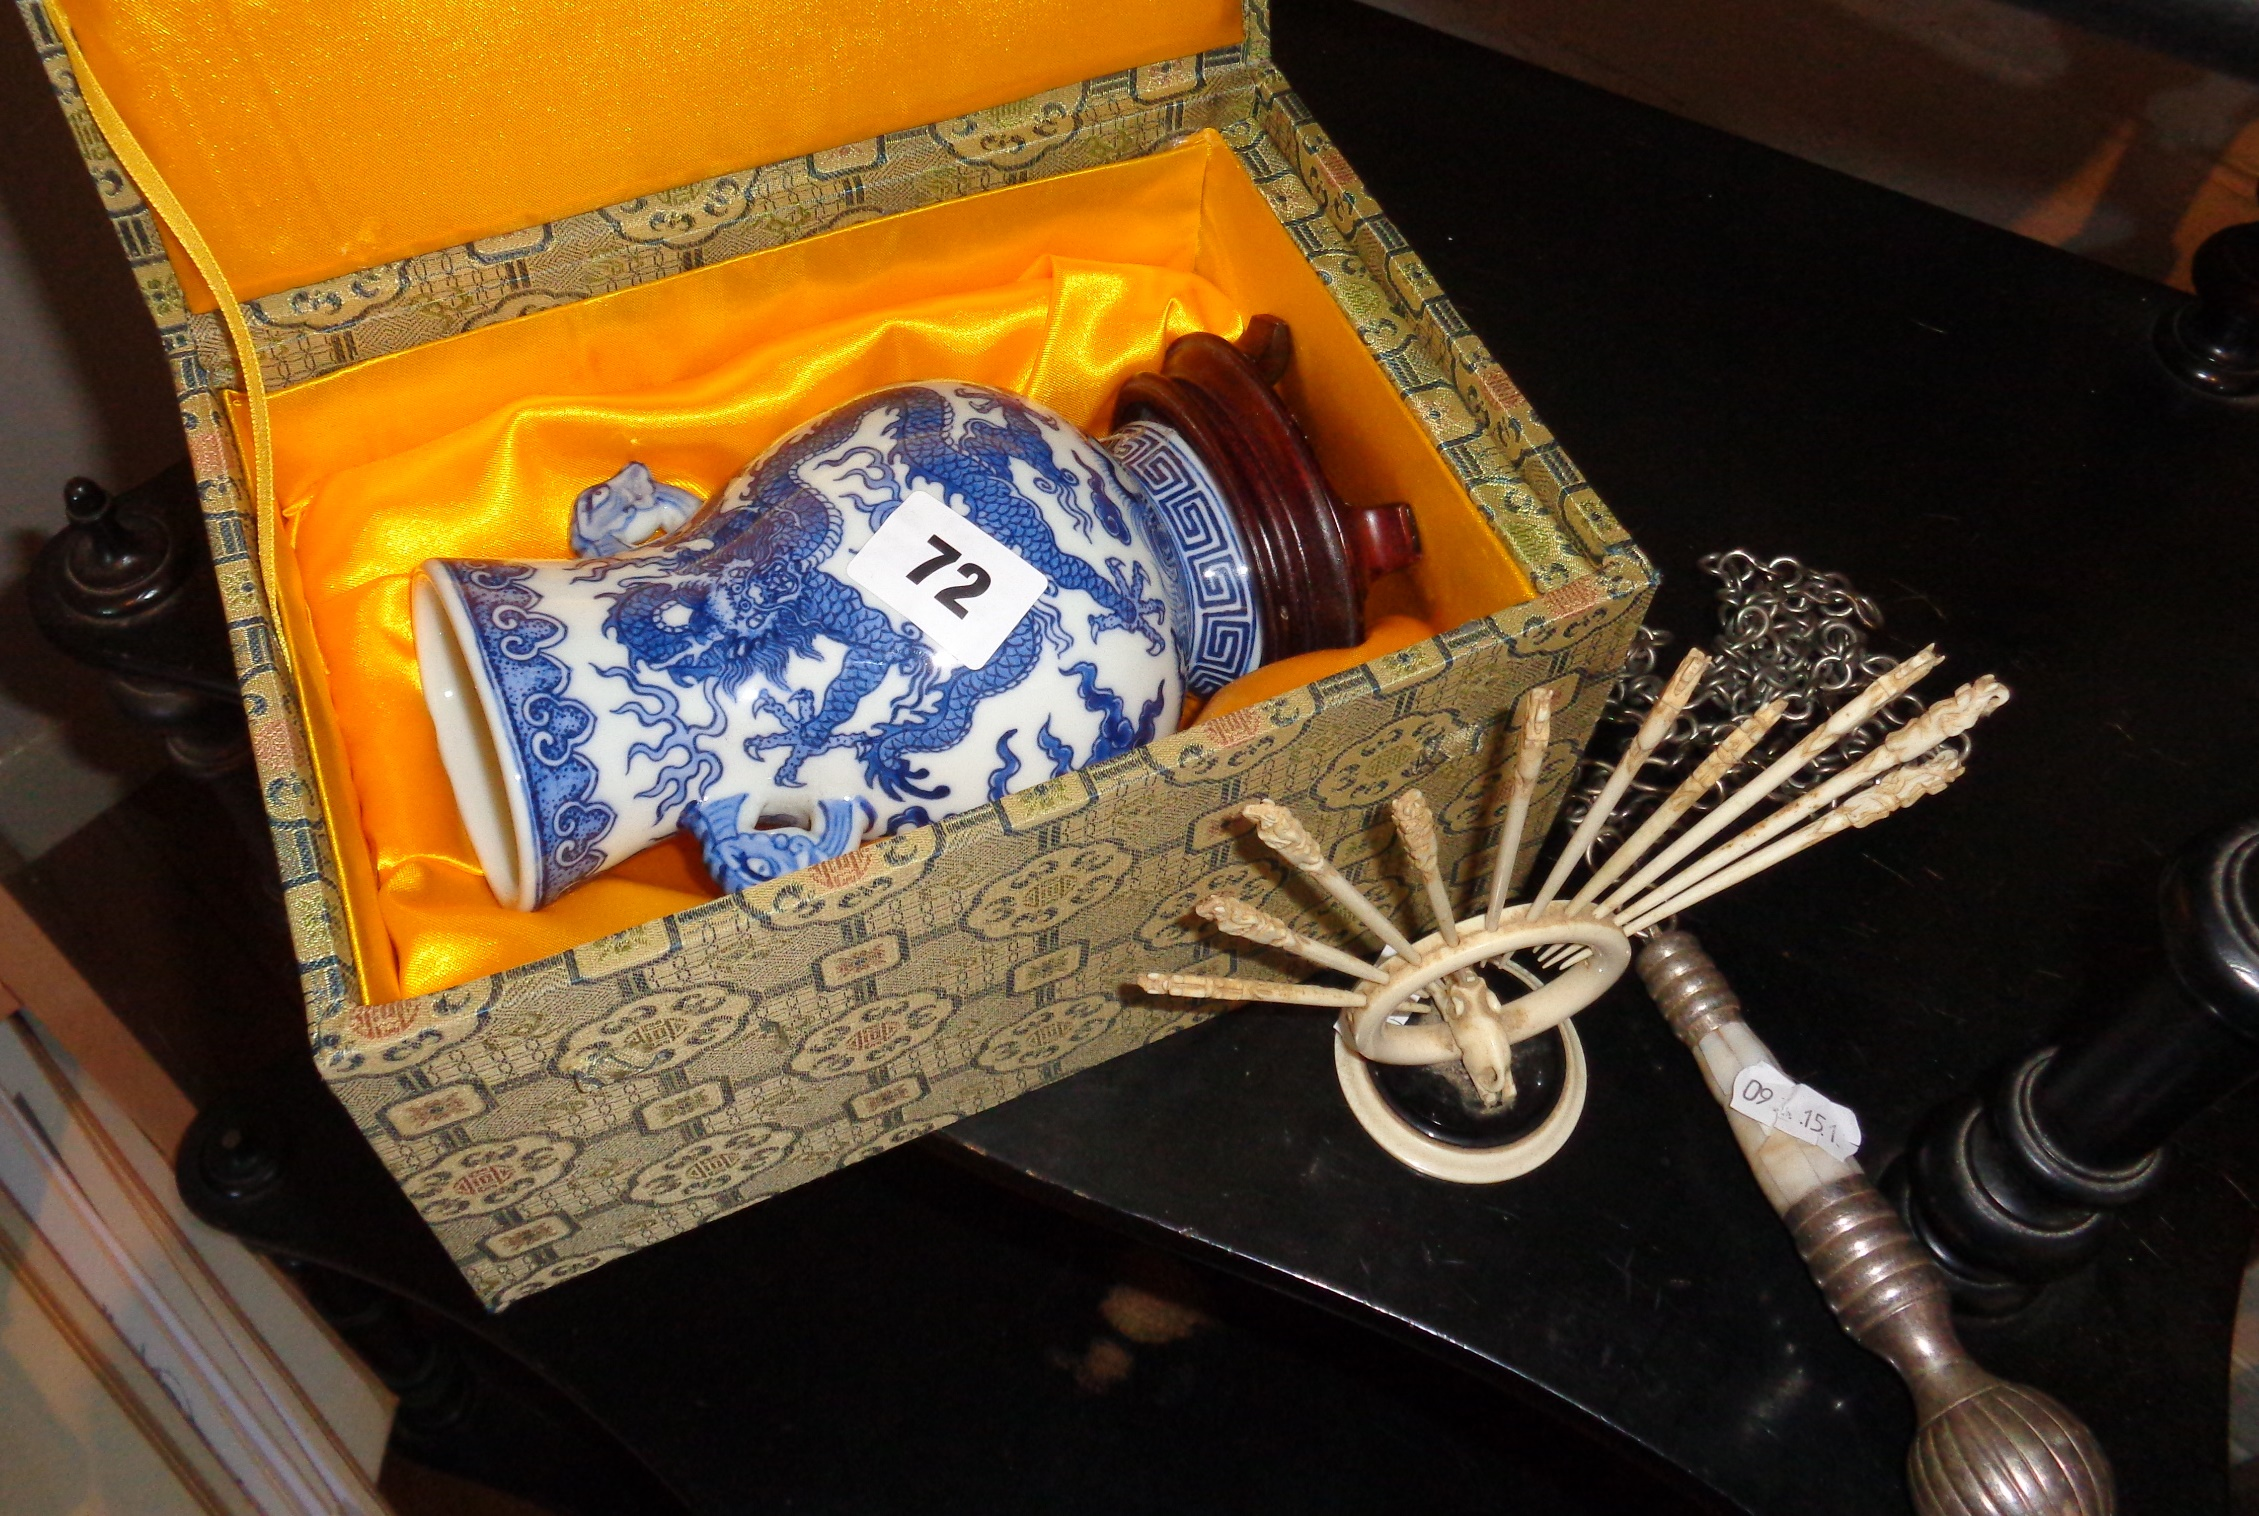 Lot 72 - Modern Chinese vase on stand, in presentation box, a set of bone toothpicks and a toilet chain